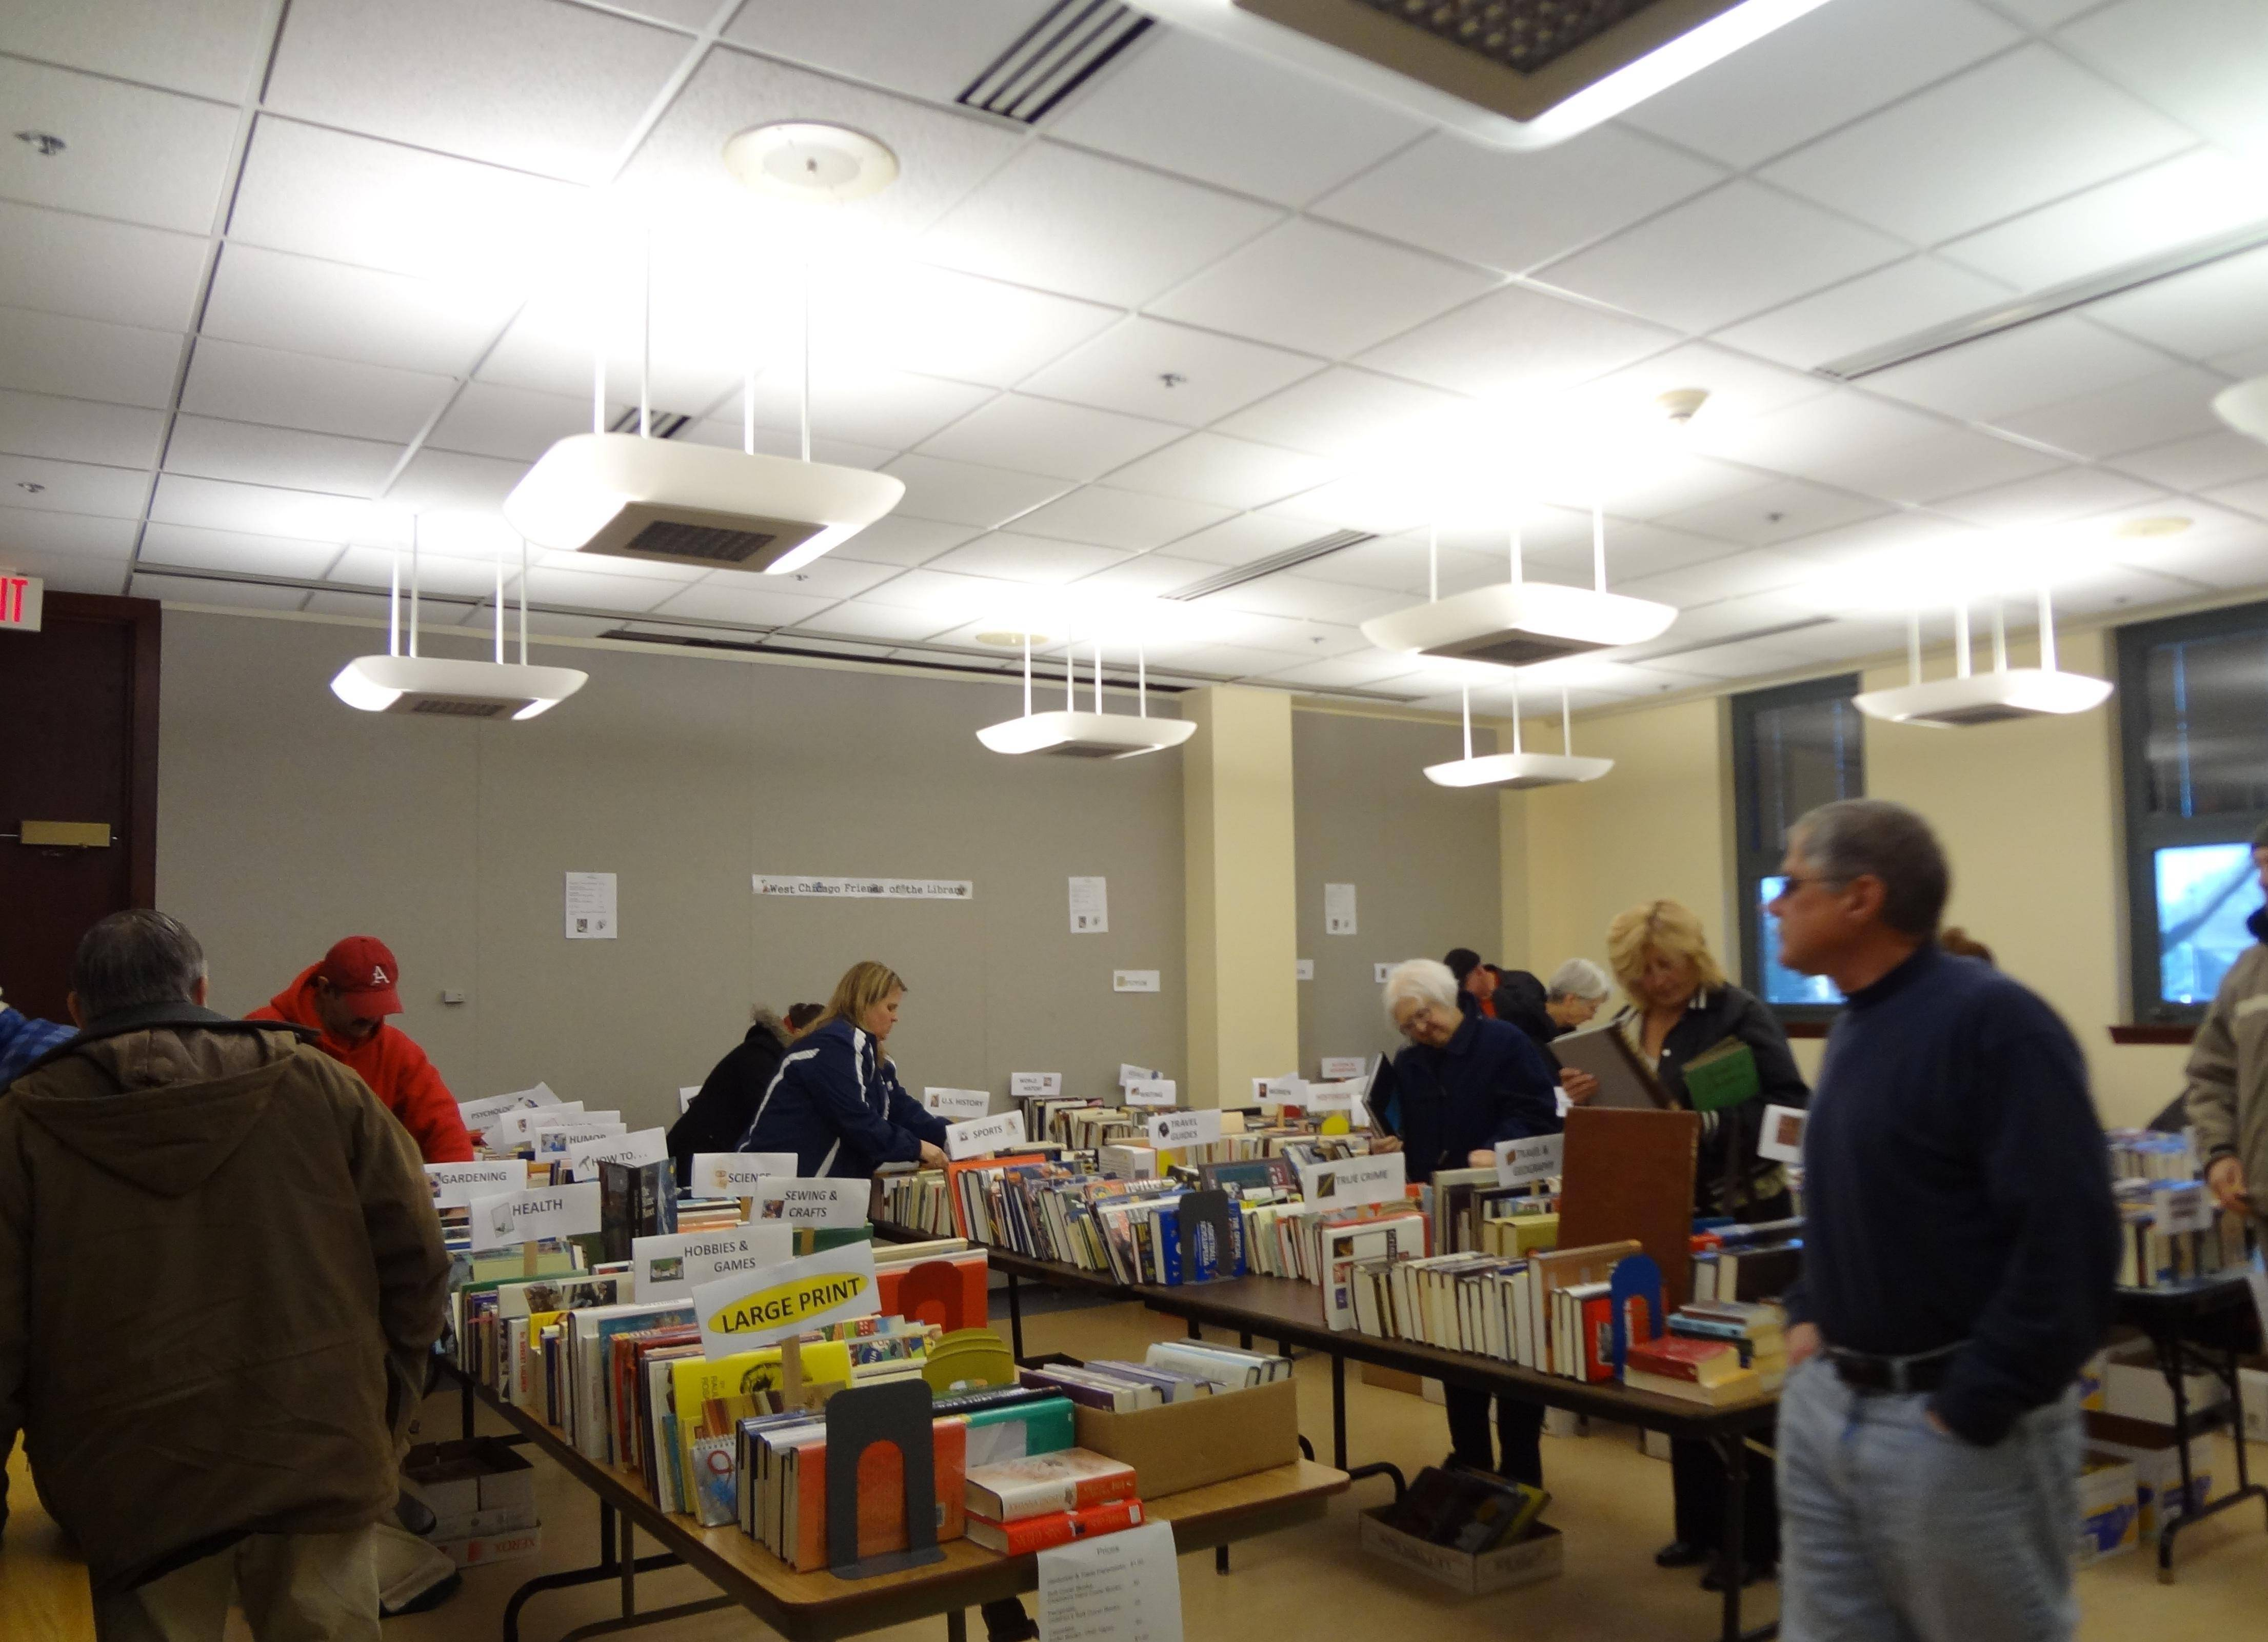 West Chicago Friends of the Library book sale in 2012